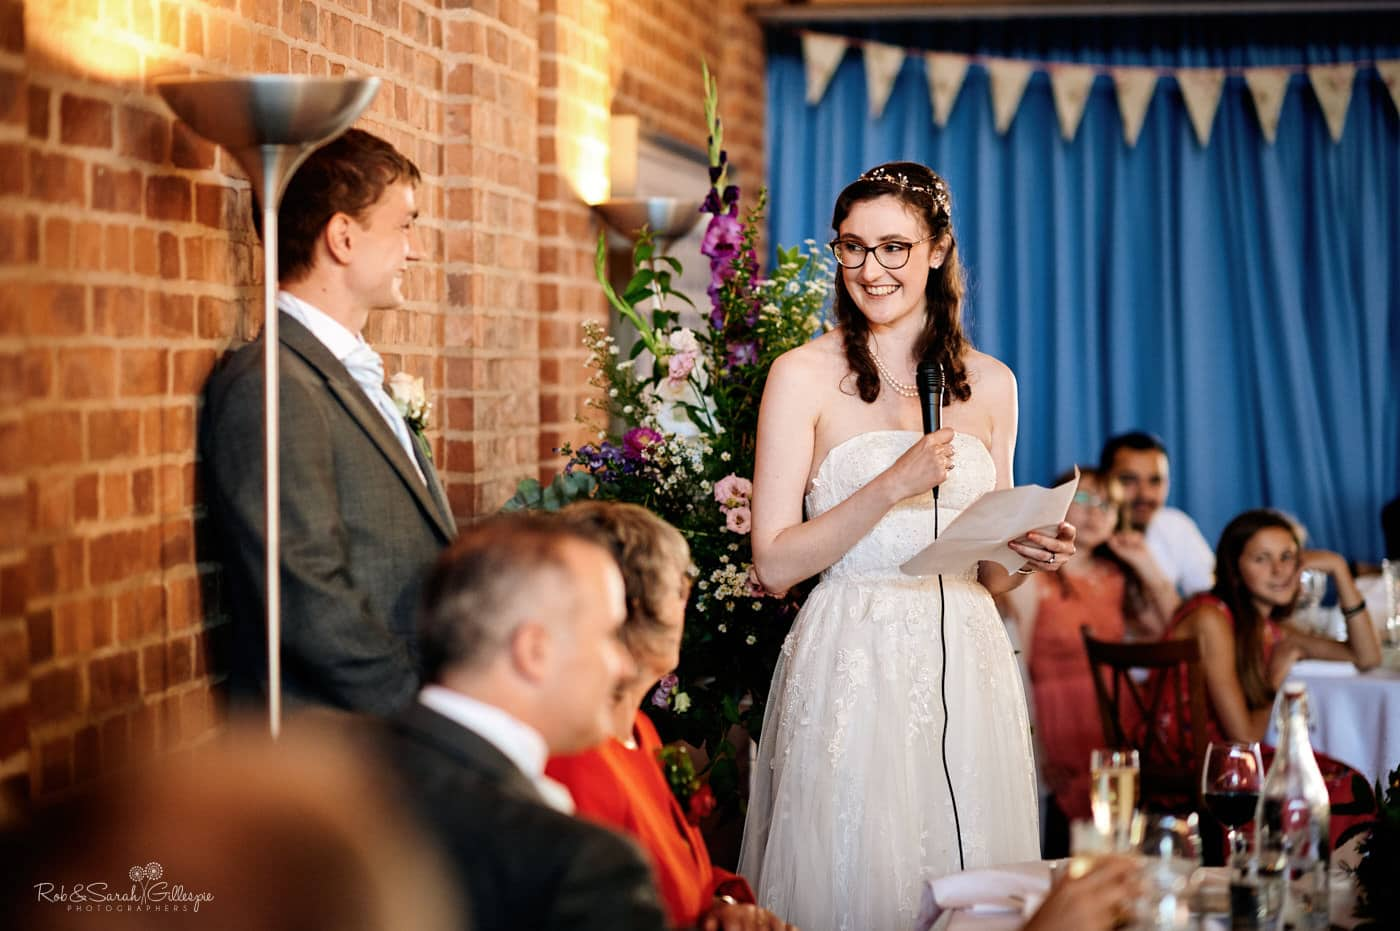 Speeches at Avoncroft Museum wedding